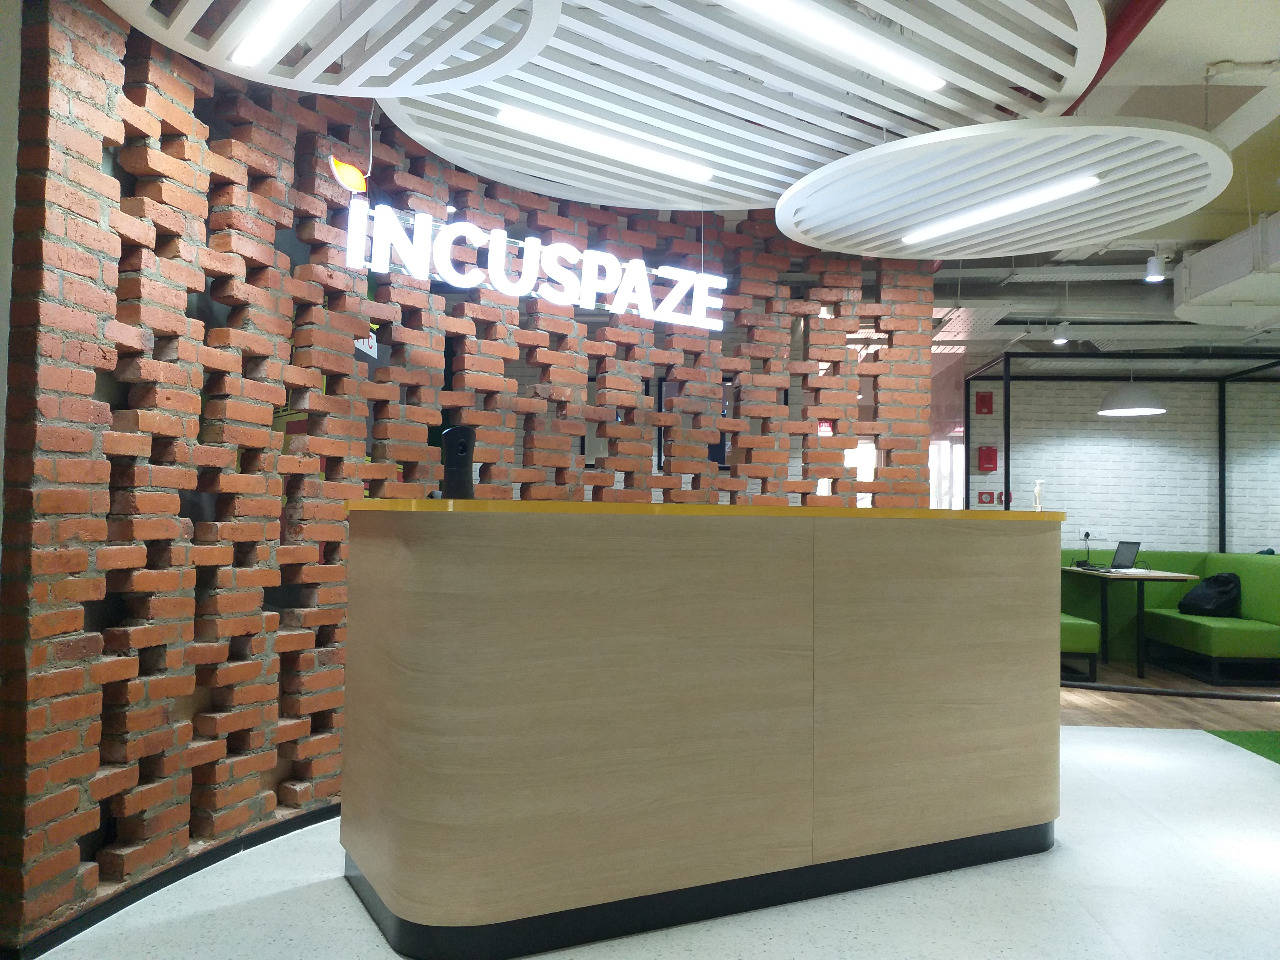 Incuspaze launches 500-seater capacity office in Kochi – ET RealEstate